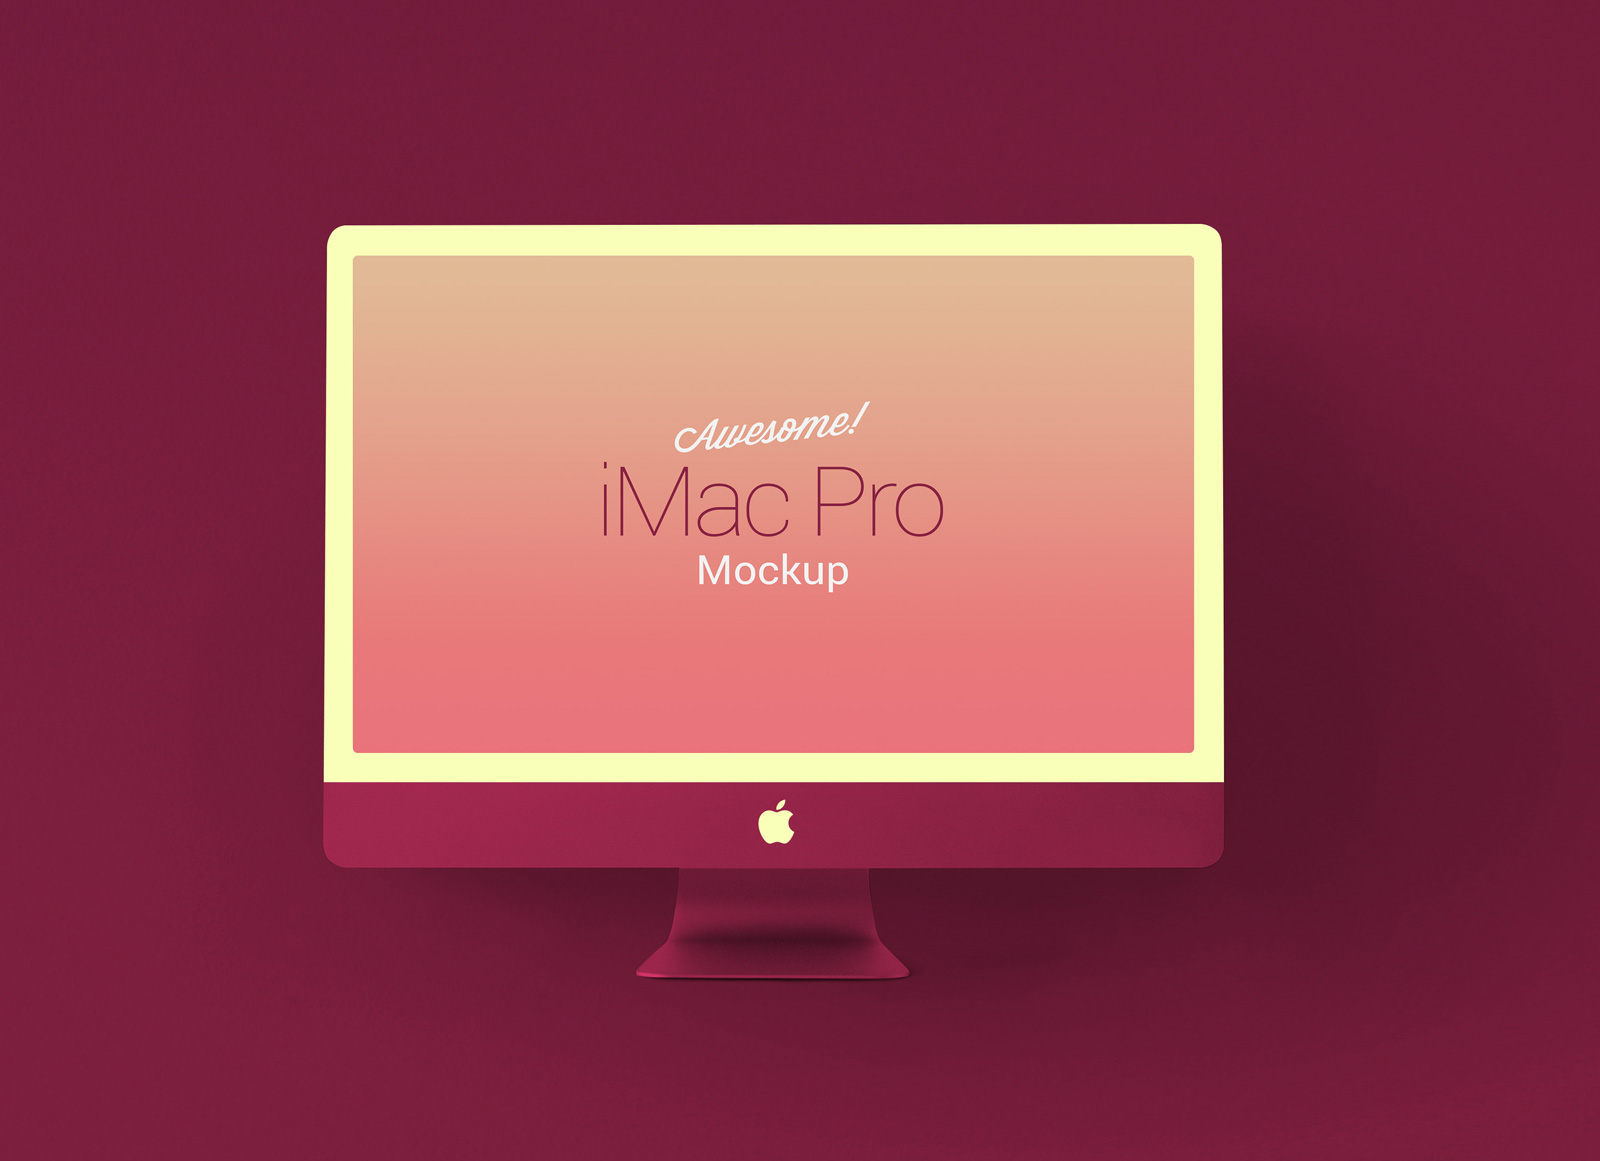 Free-Fully-Customizable-iMac-Pro-Mockup-PSD